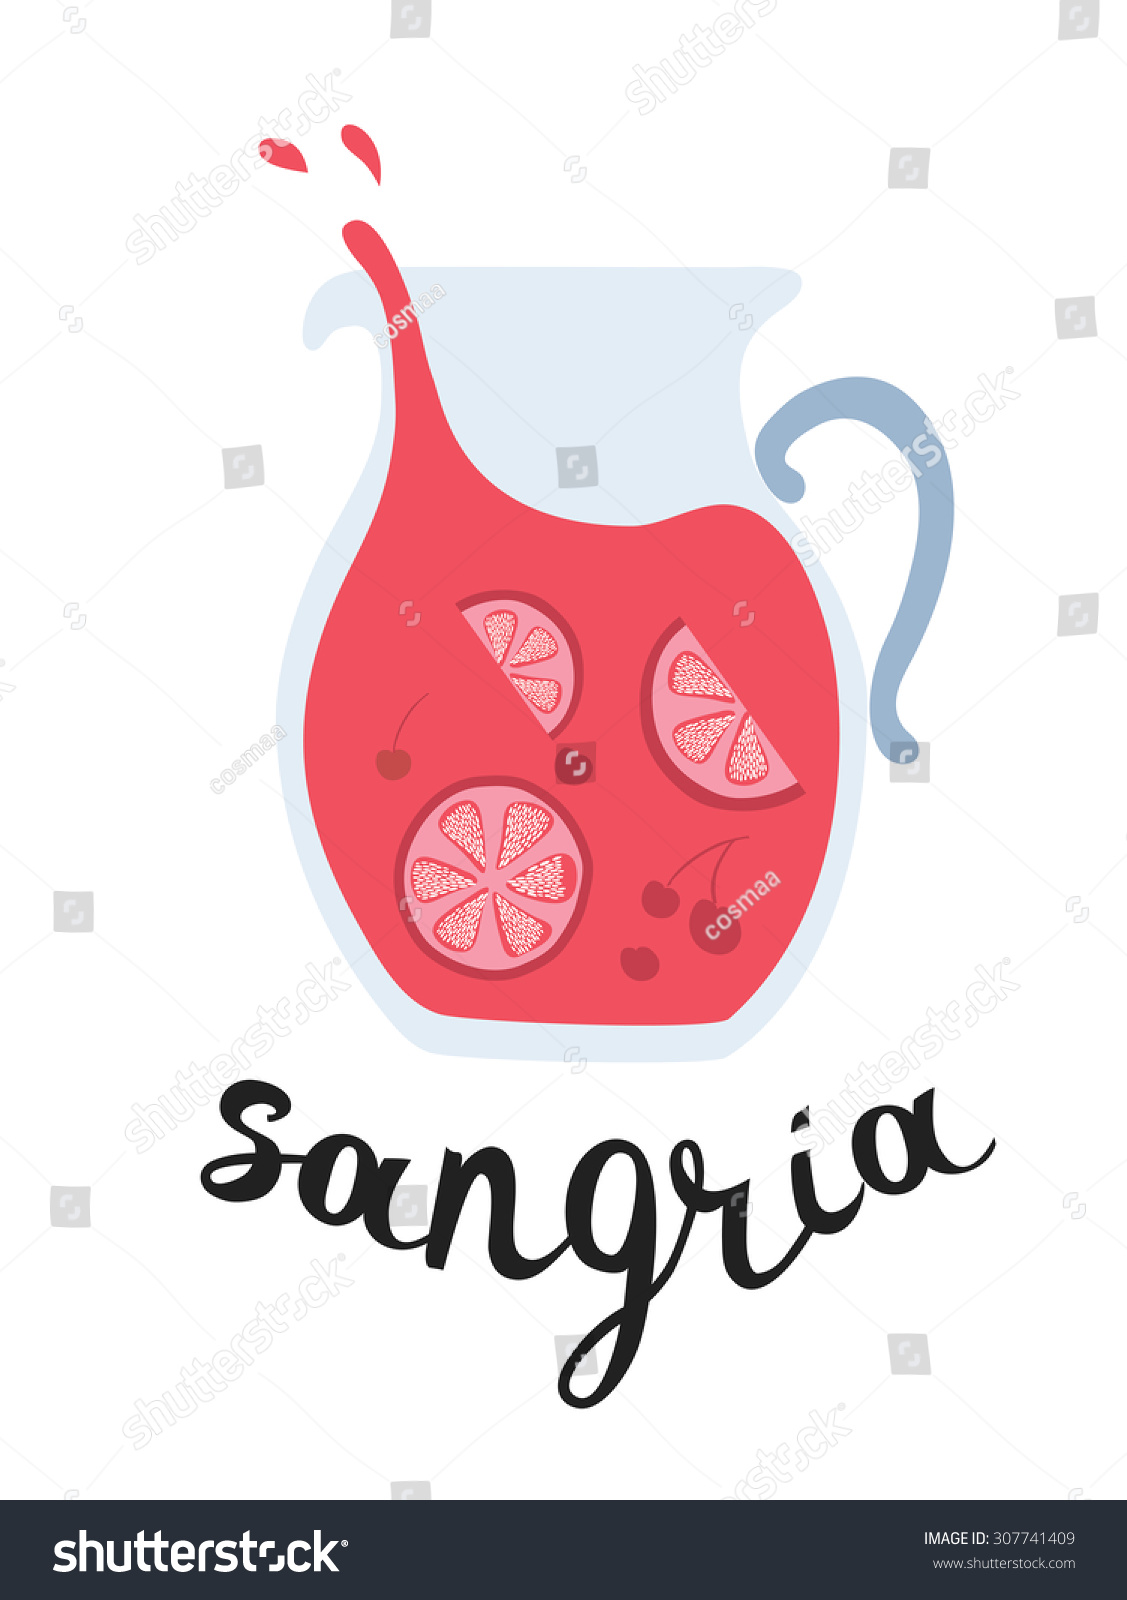 Peach moreover Stock Illustration Lettuce Cute Vector Cartoon Isolated Shadow Image49978732 furthermore Stock Vector Vector Illustration Of Sangria Jug With Handle And Lettering On Isolated White Background further  moreover Stock Images Cartoon Kitchen Blender Black White Line Retro Style Vector Available Image37027564. on cartoon fruit juice